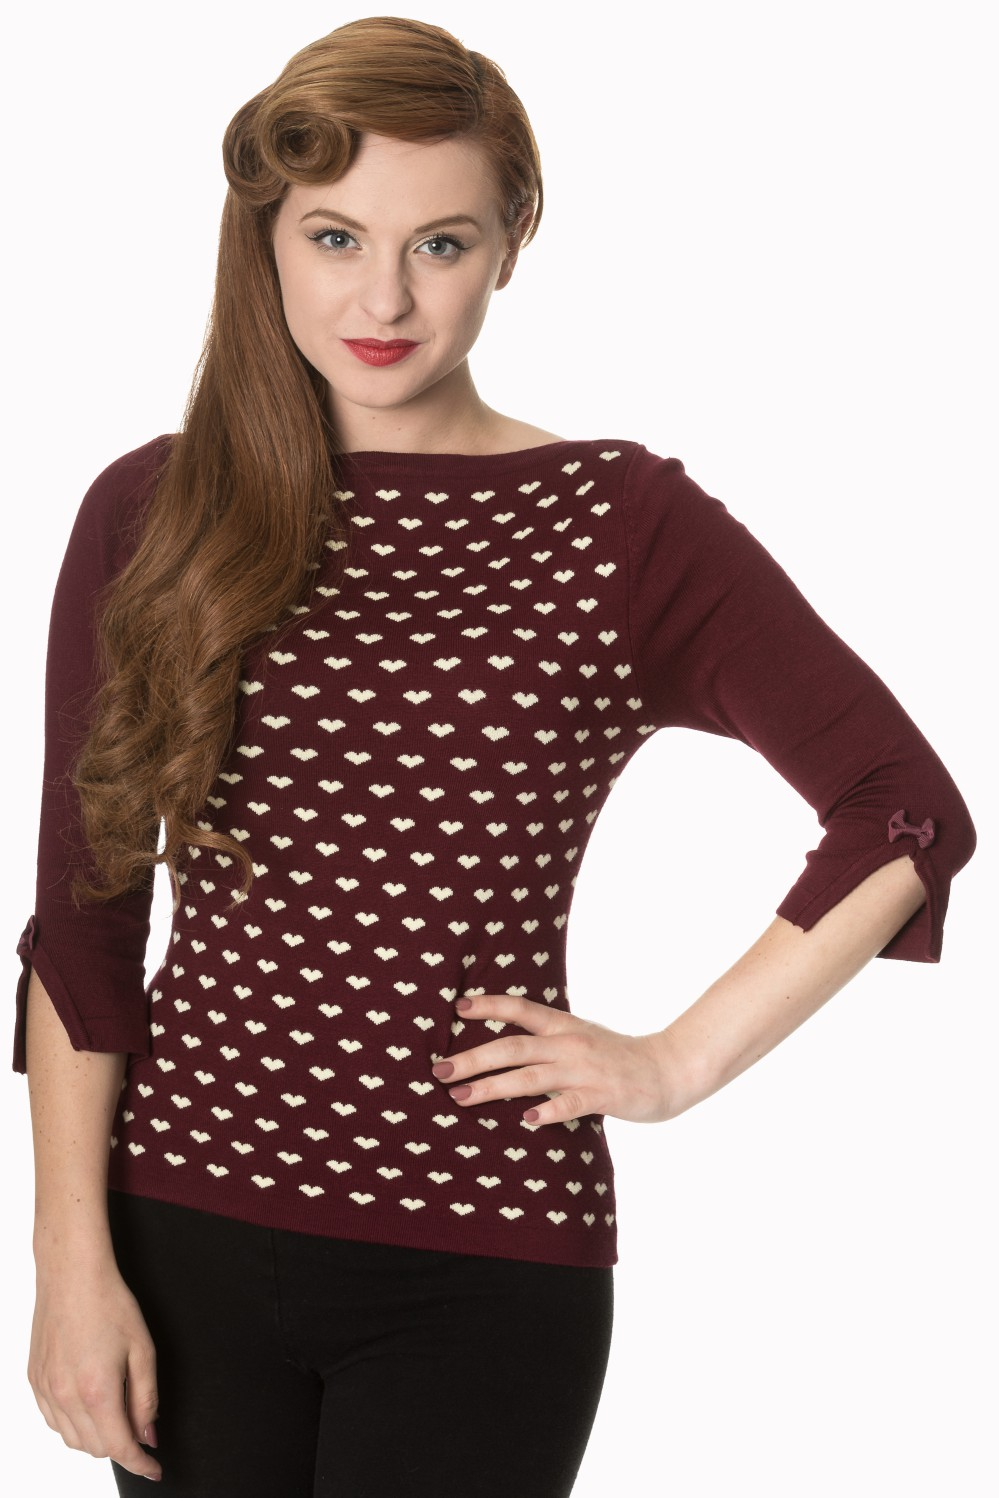 Retro 60s Charming Heart Knit Burgundy Sweater